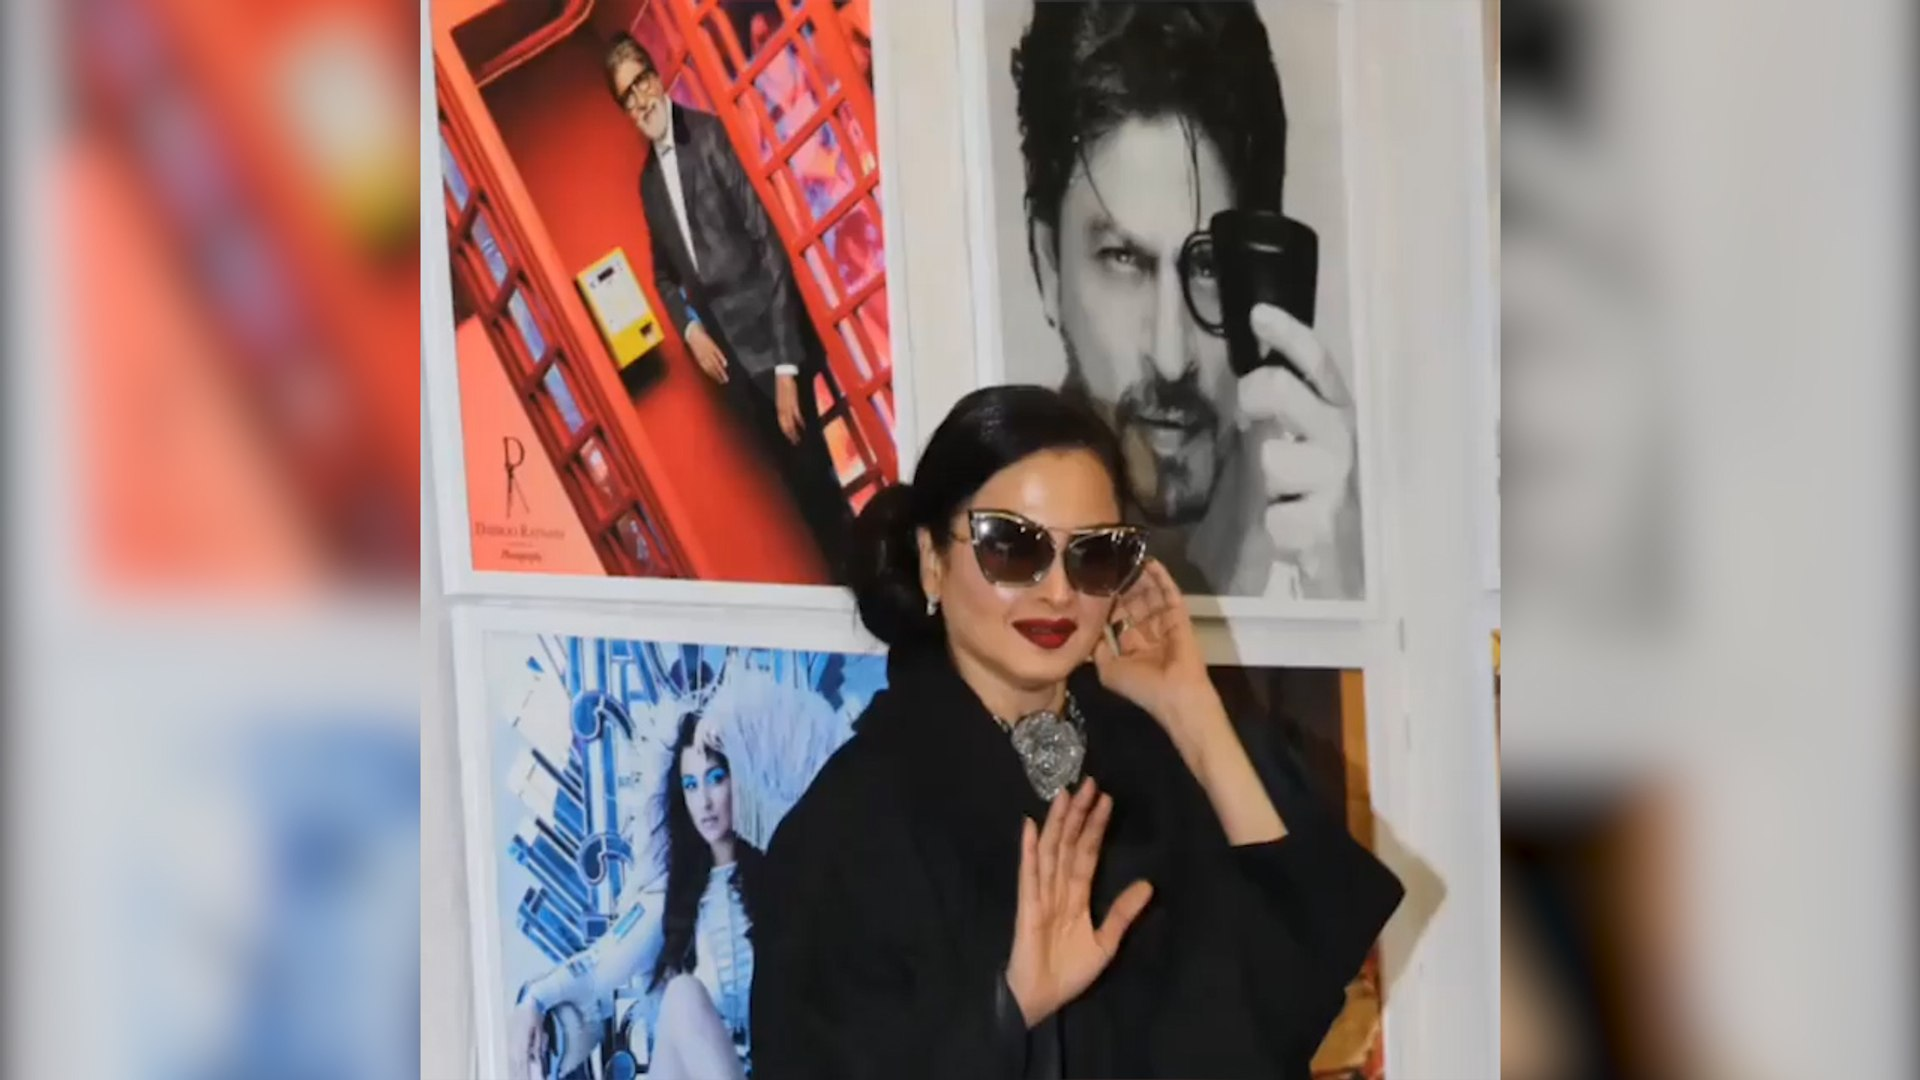 Watch: Rekha's reaction after she poses in front of Amitabh Bachchan's photo